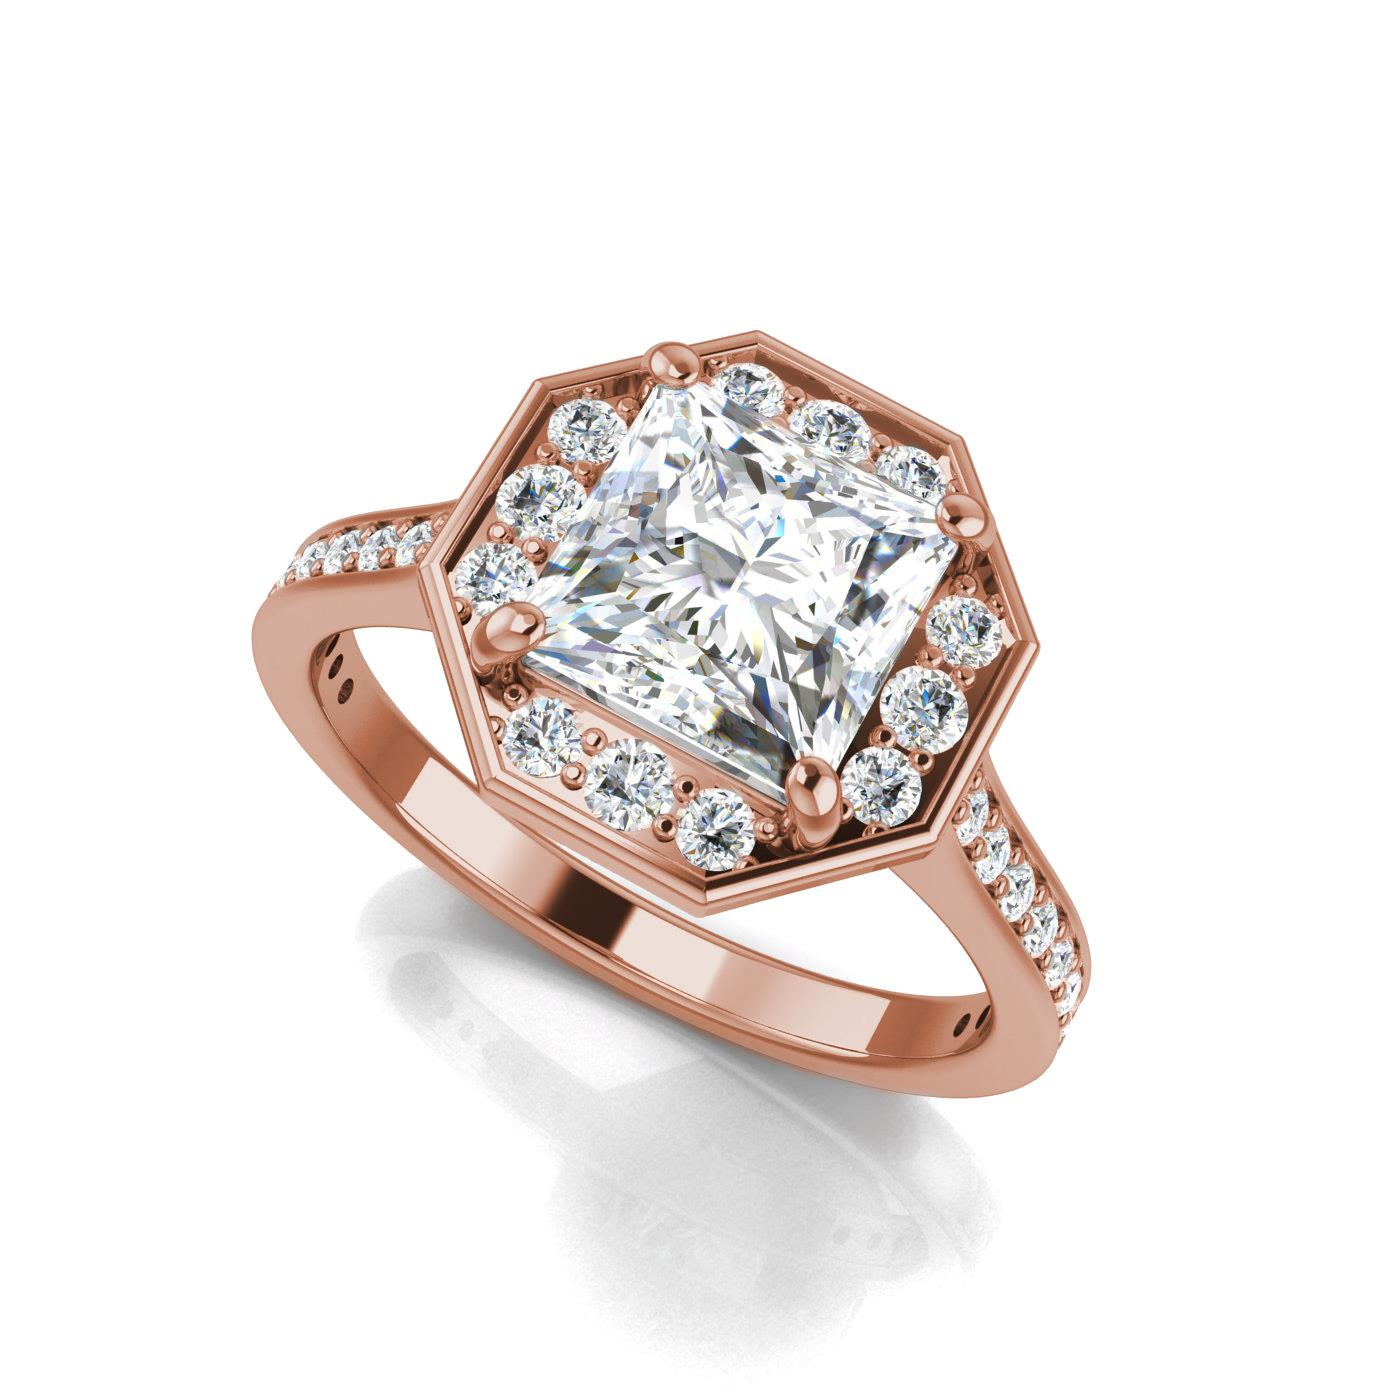 solitaire pughsdiamonds com h diamond rings princess engagement with ring product daimond gold white cut